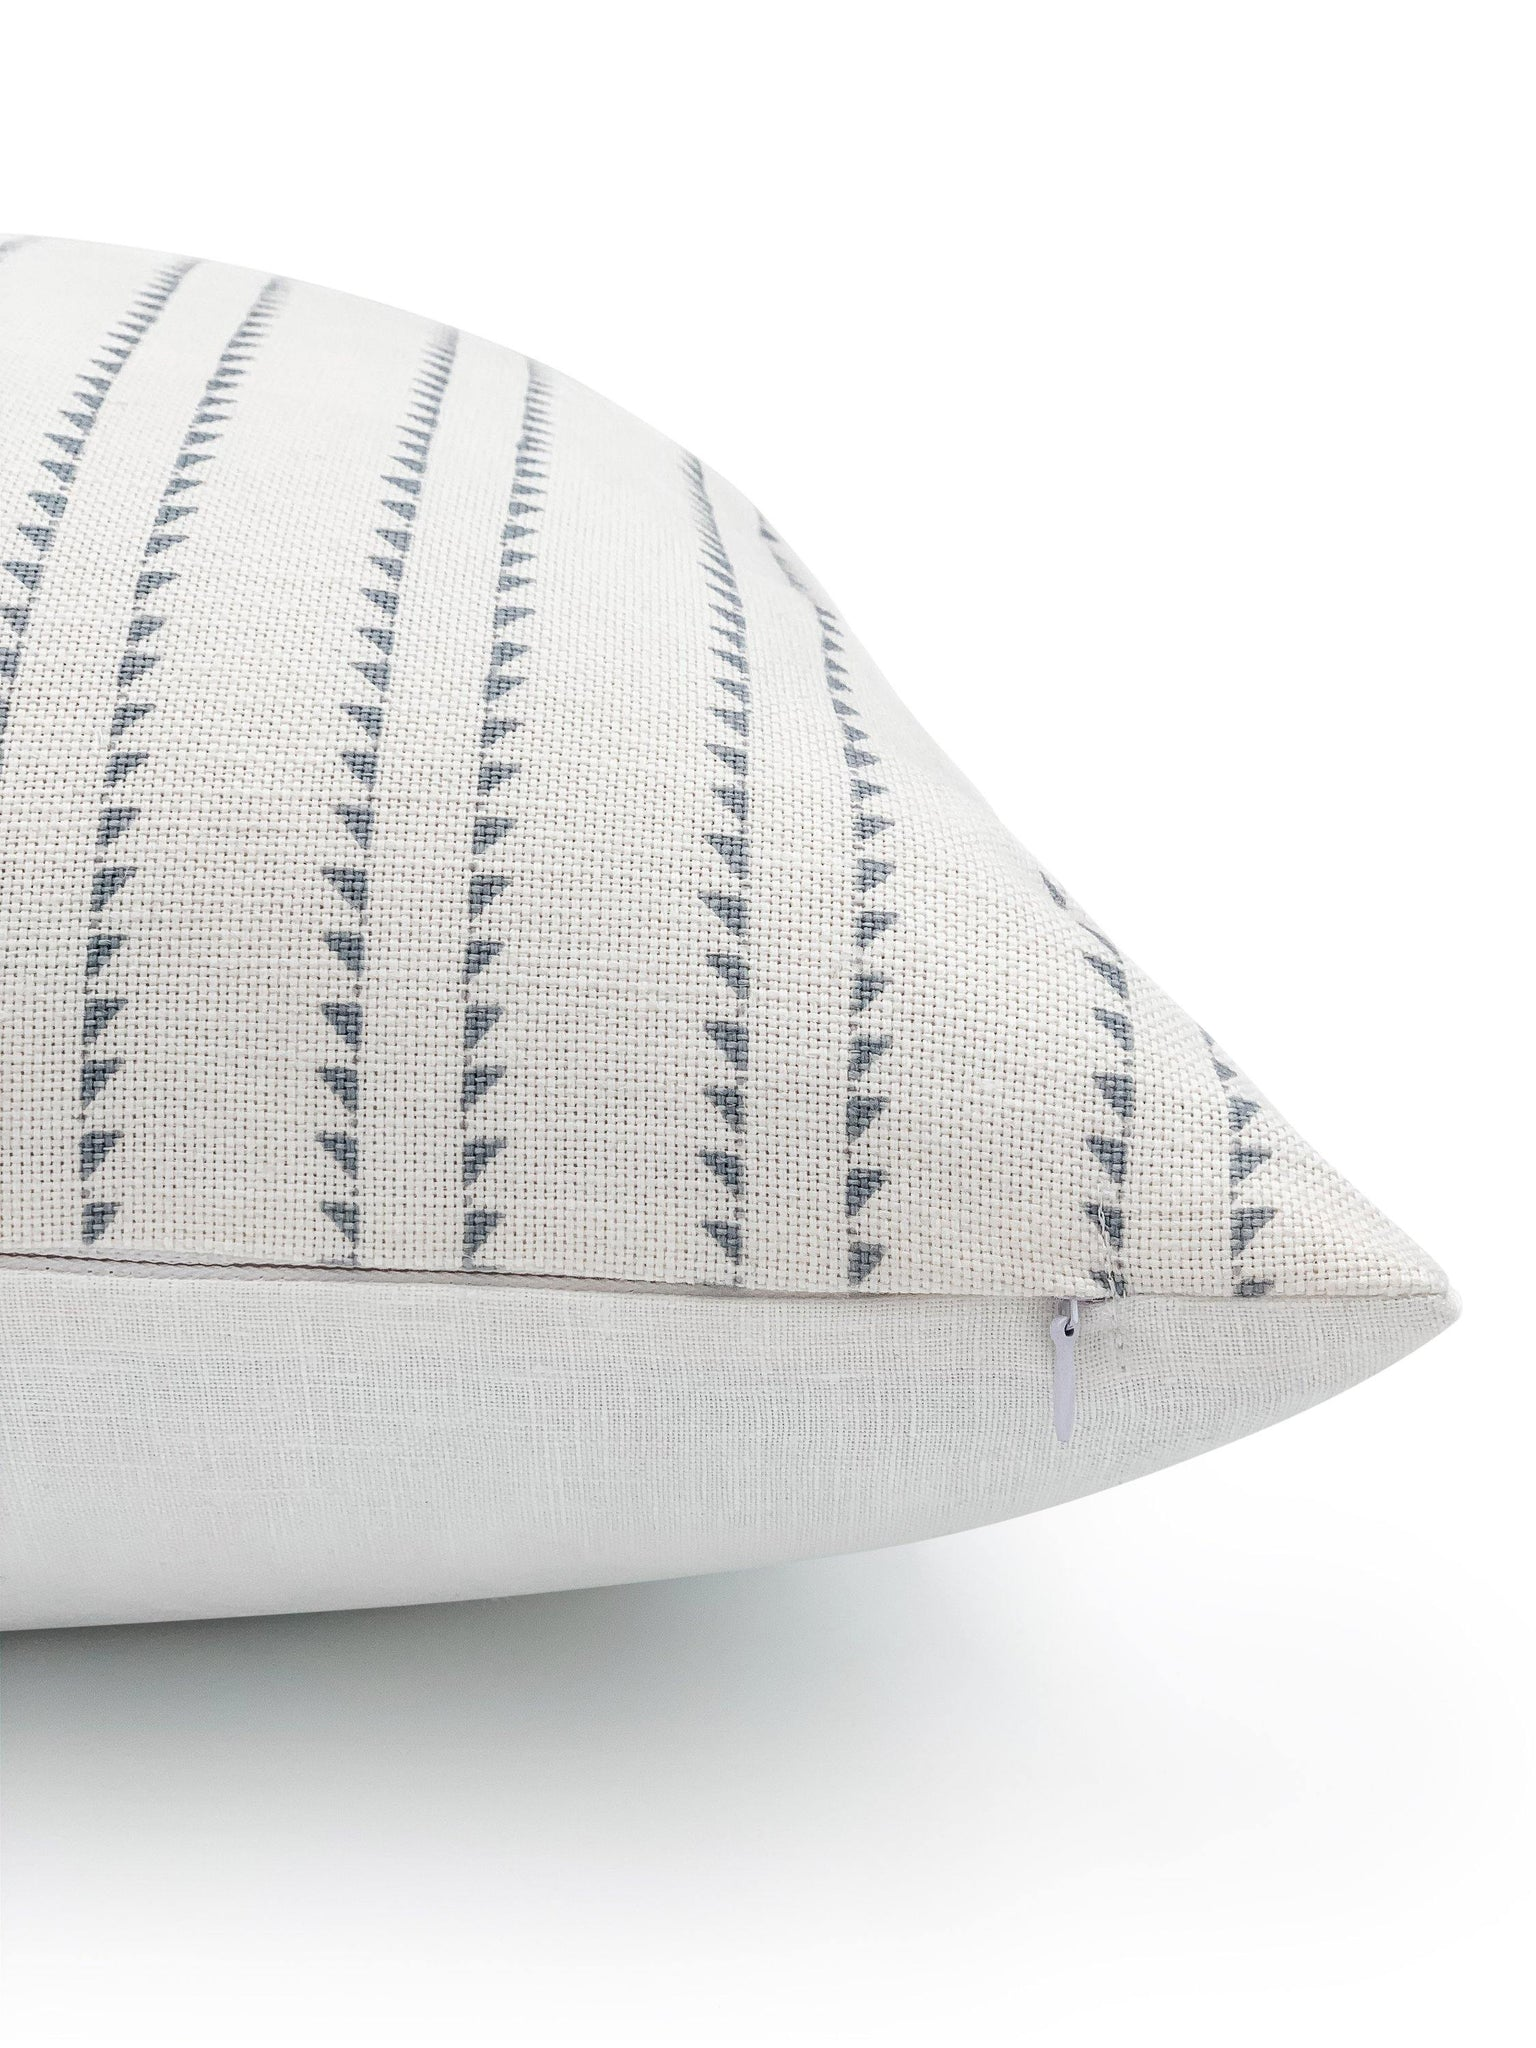 Rock Grey Stripes on White Lumbar - SunCoastSea